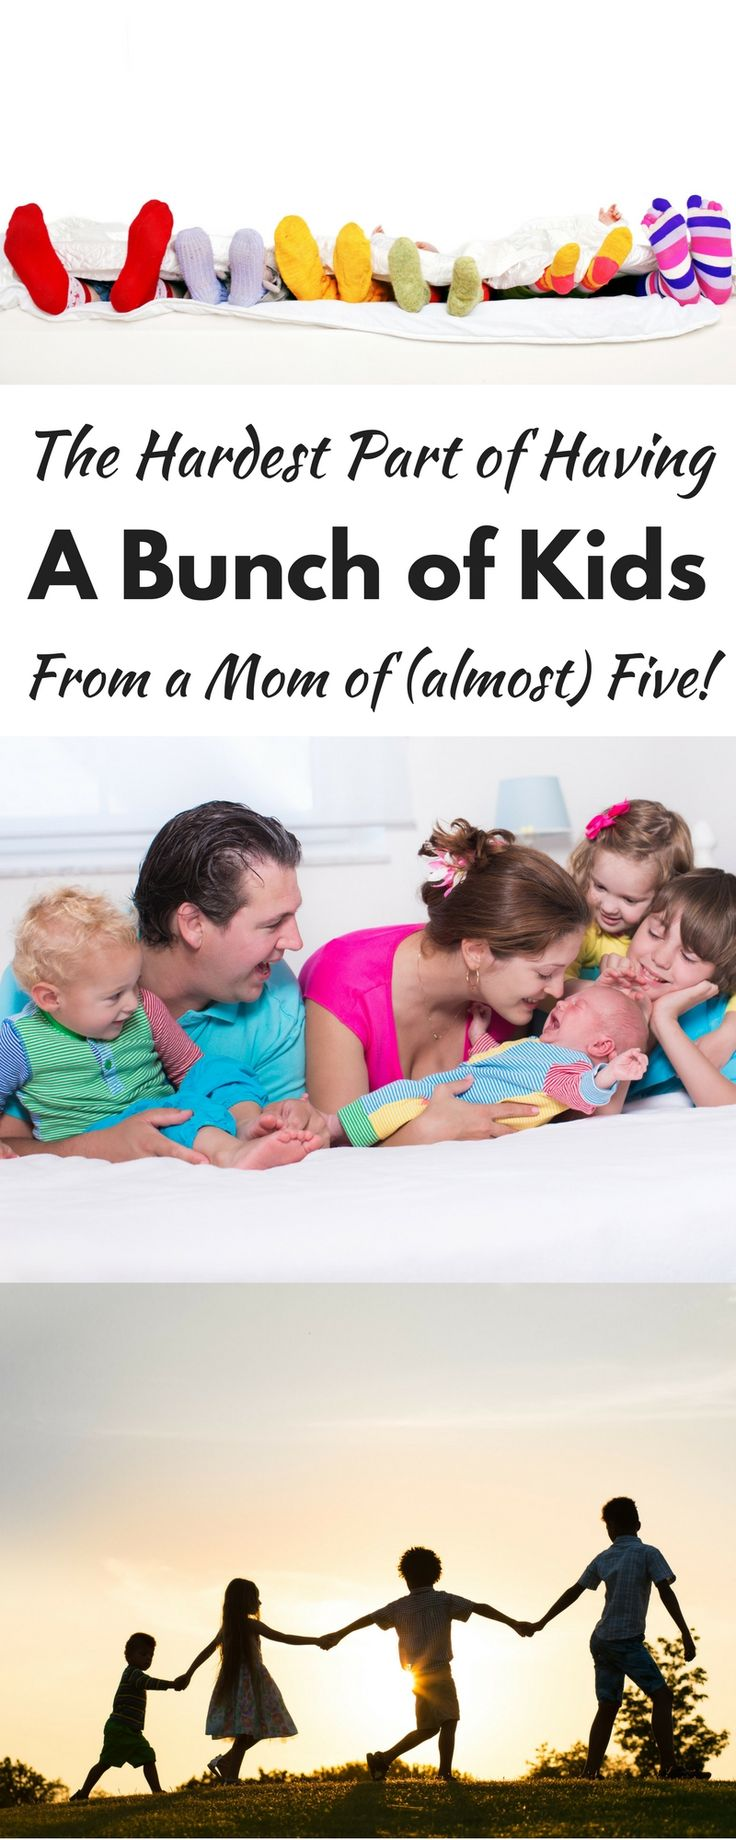 The Hardest Part of Having a Bunch of Kids (From a mom of Almost 5!)